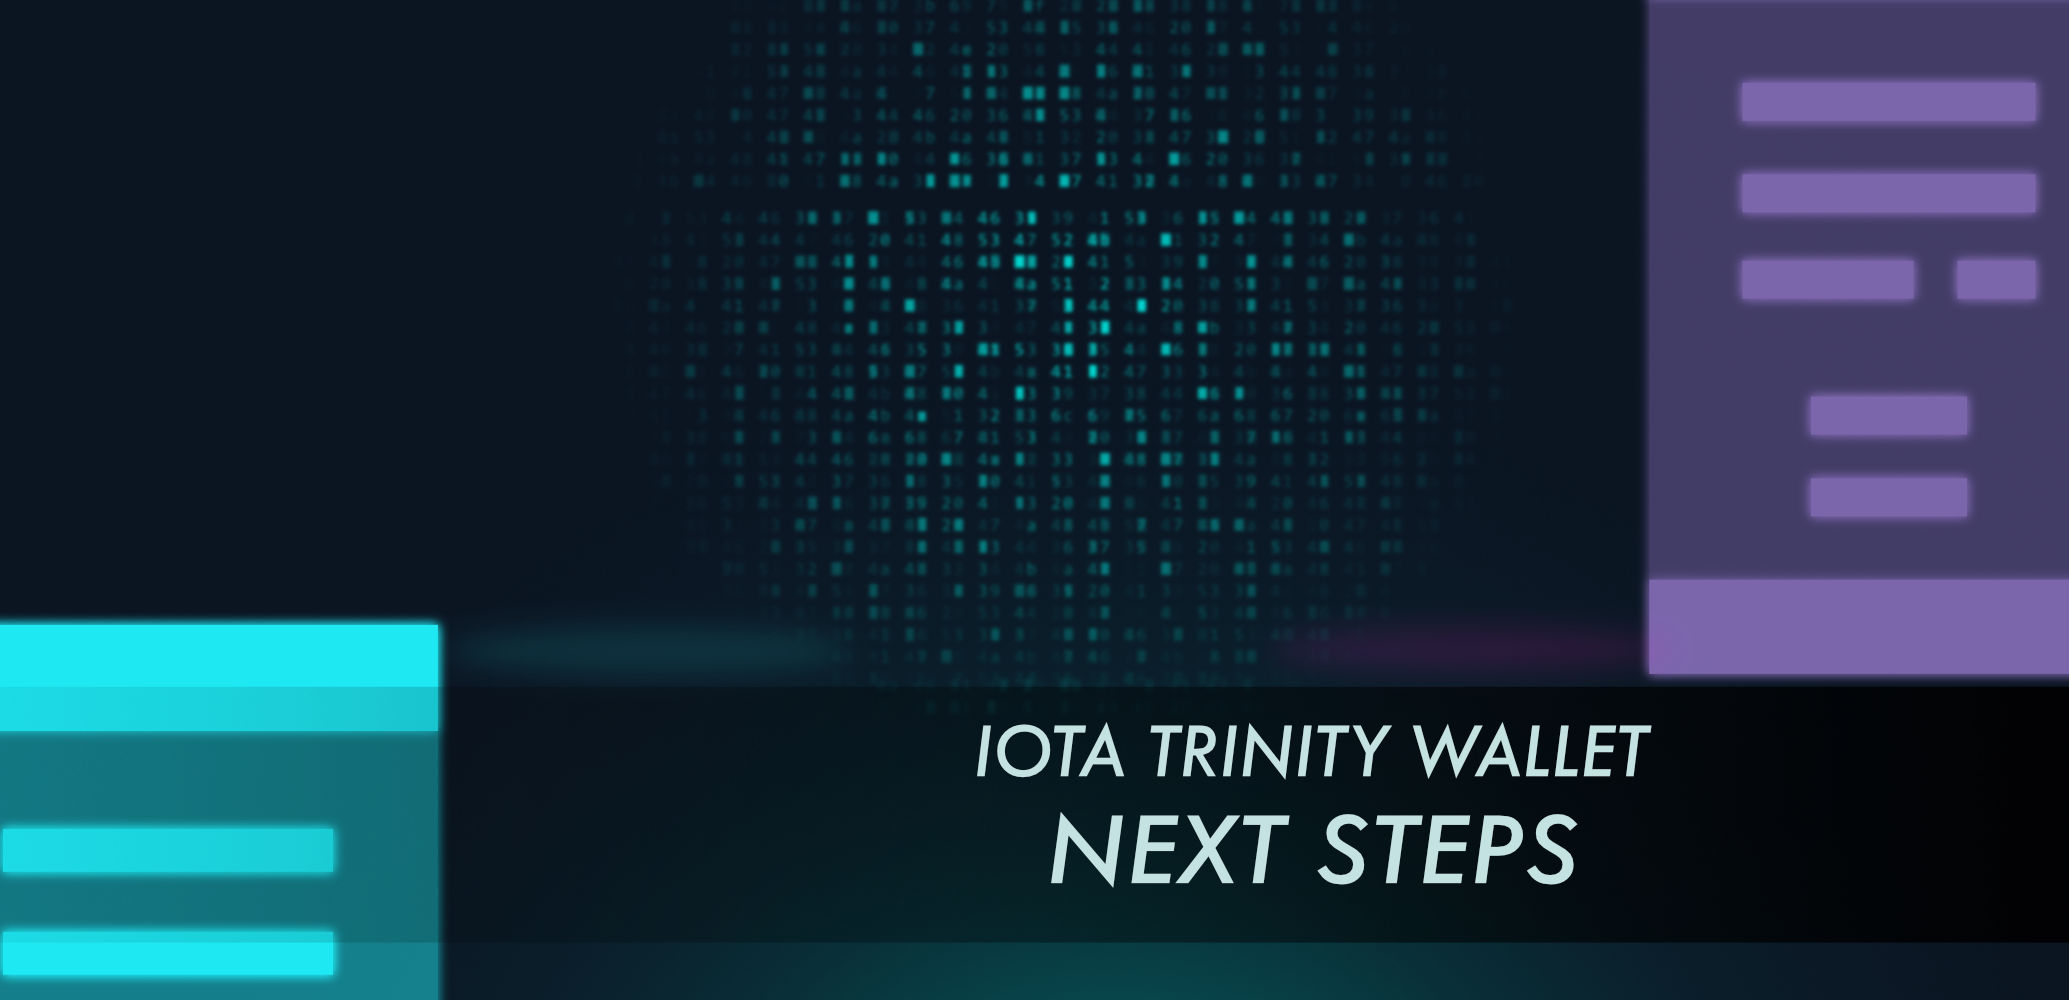 IOTA Trinity Wallet: Next Steps - IOTA